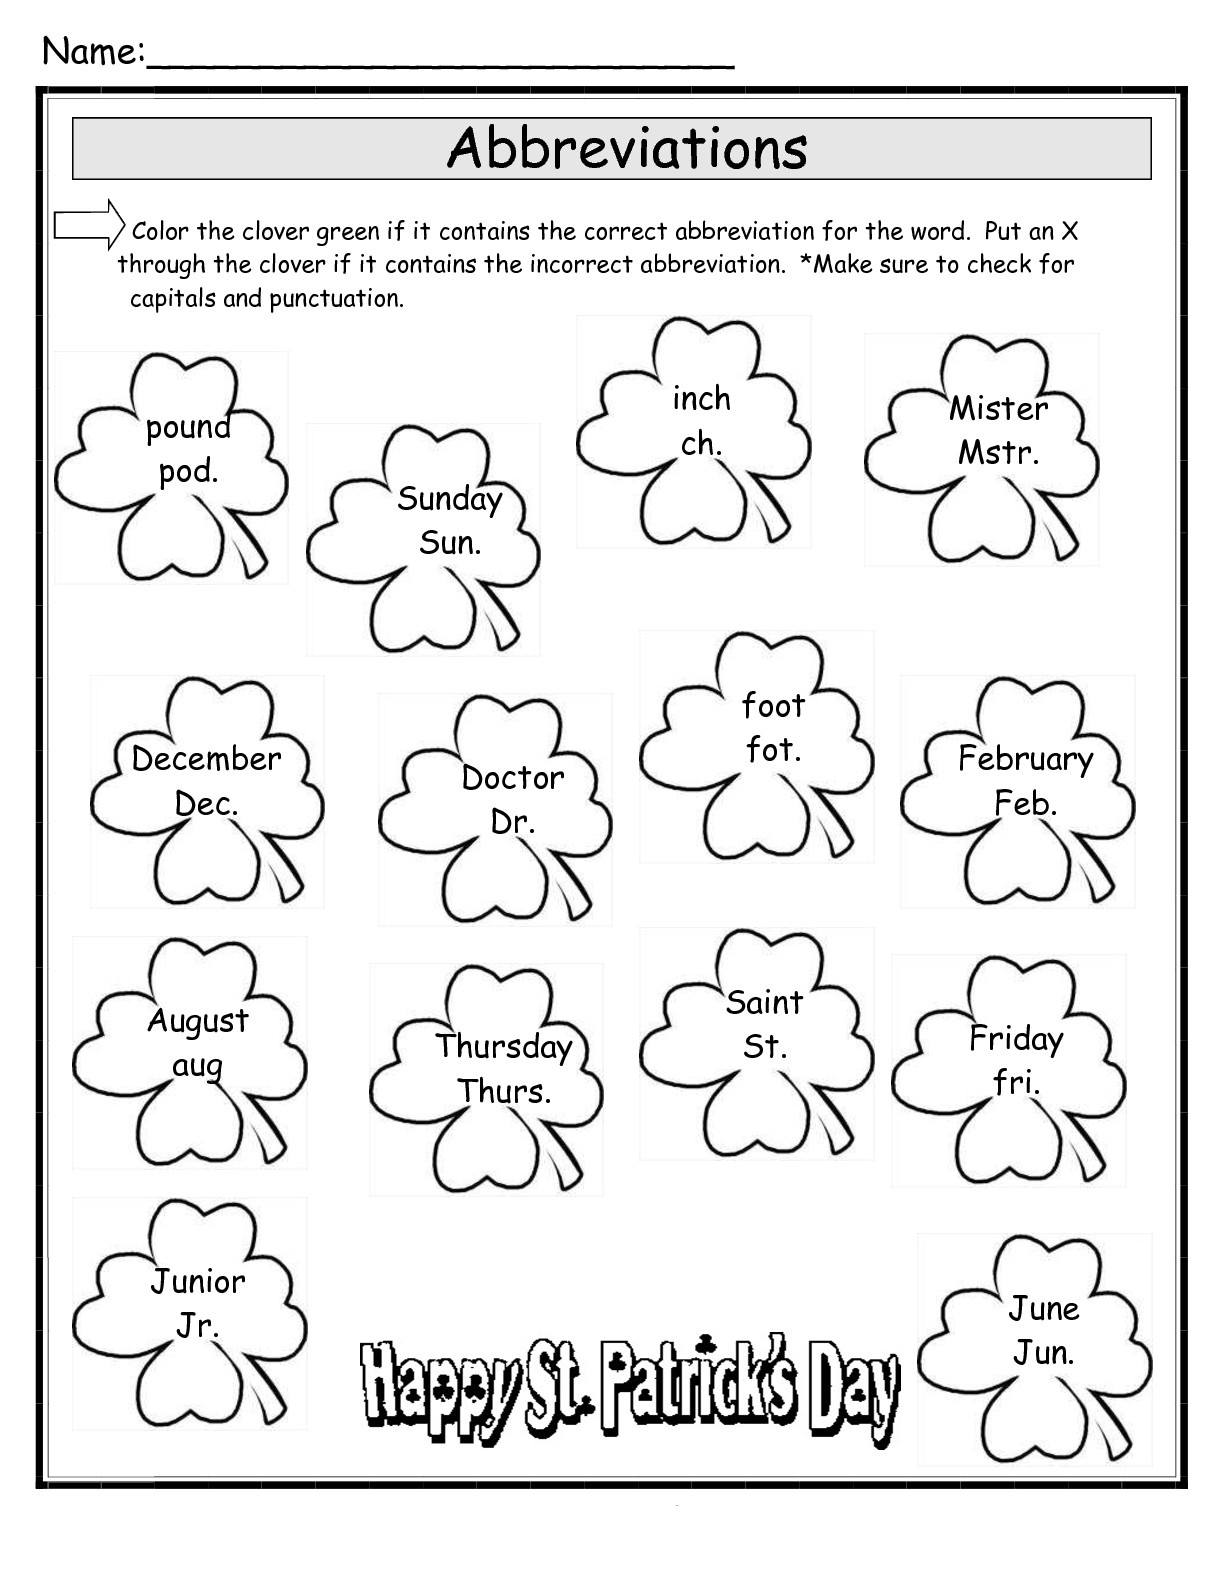 Rodents Worksheet Pa